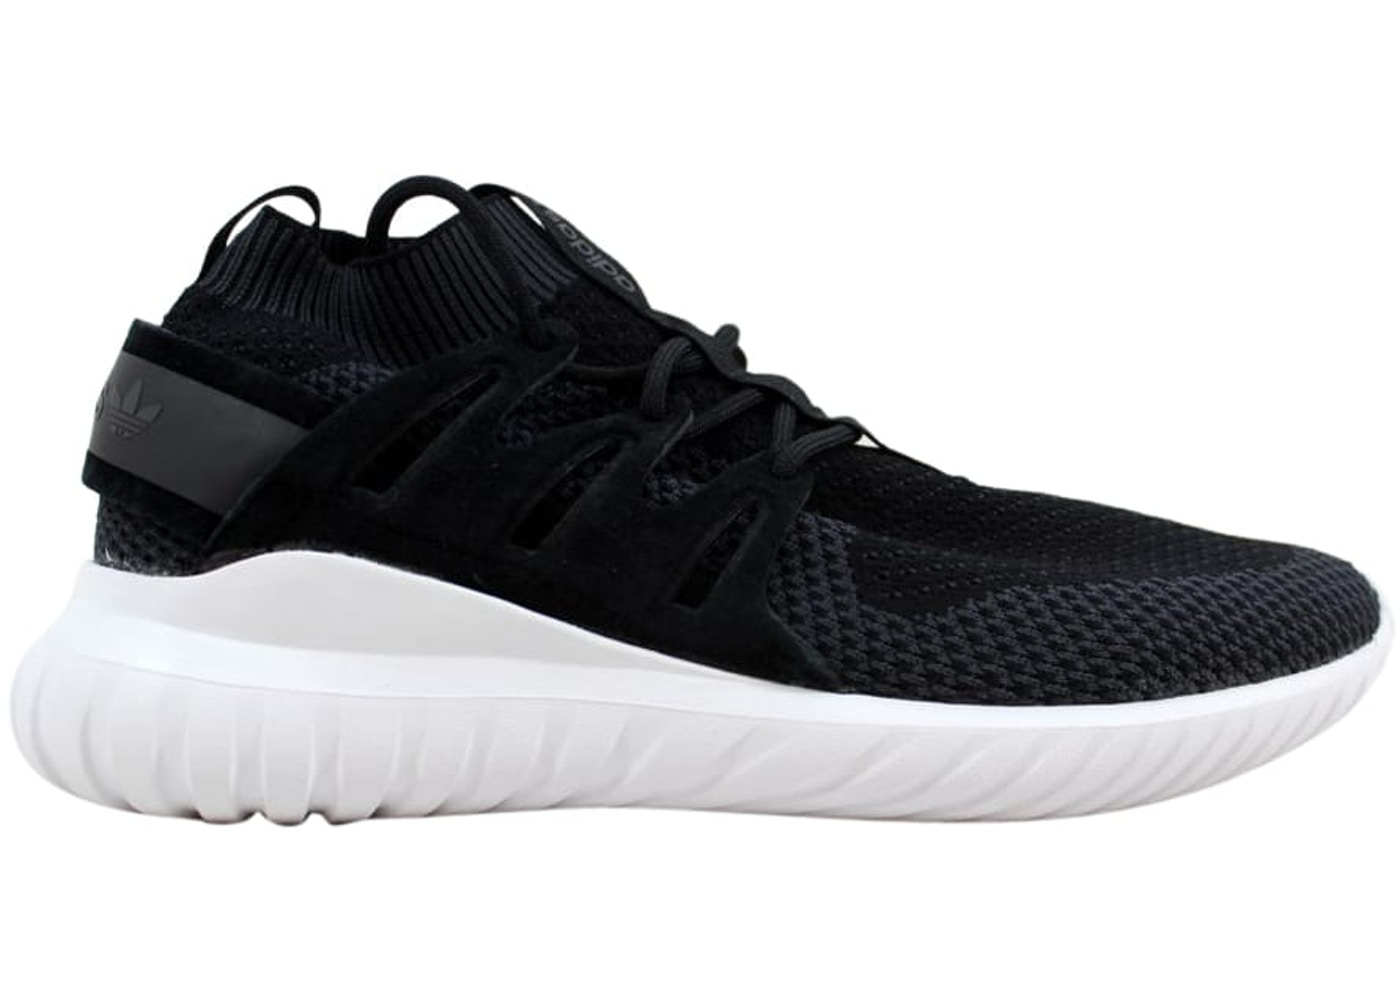 factory authentic e251e 913fd adidas Tubular Nova PK Black